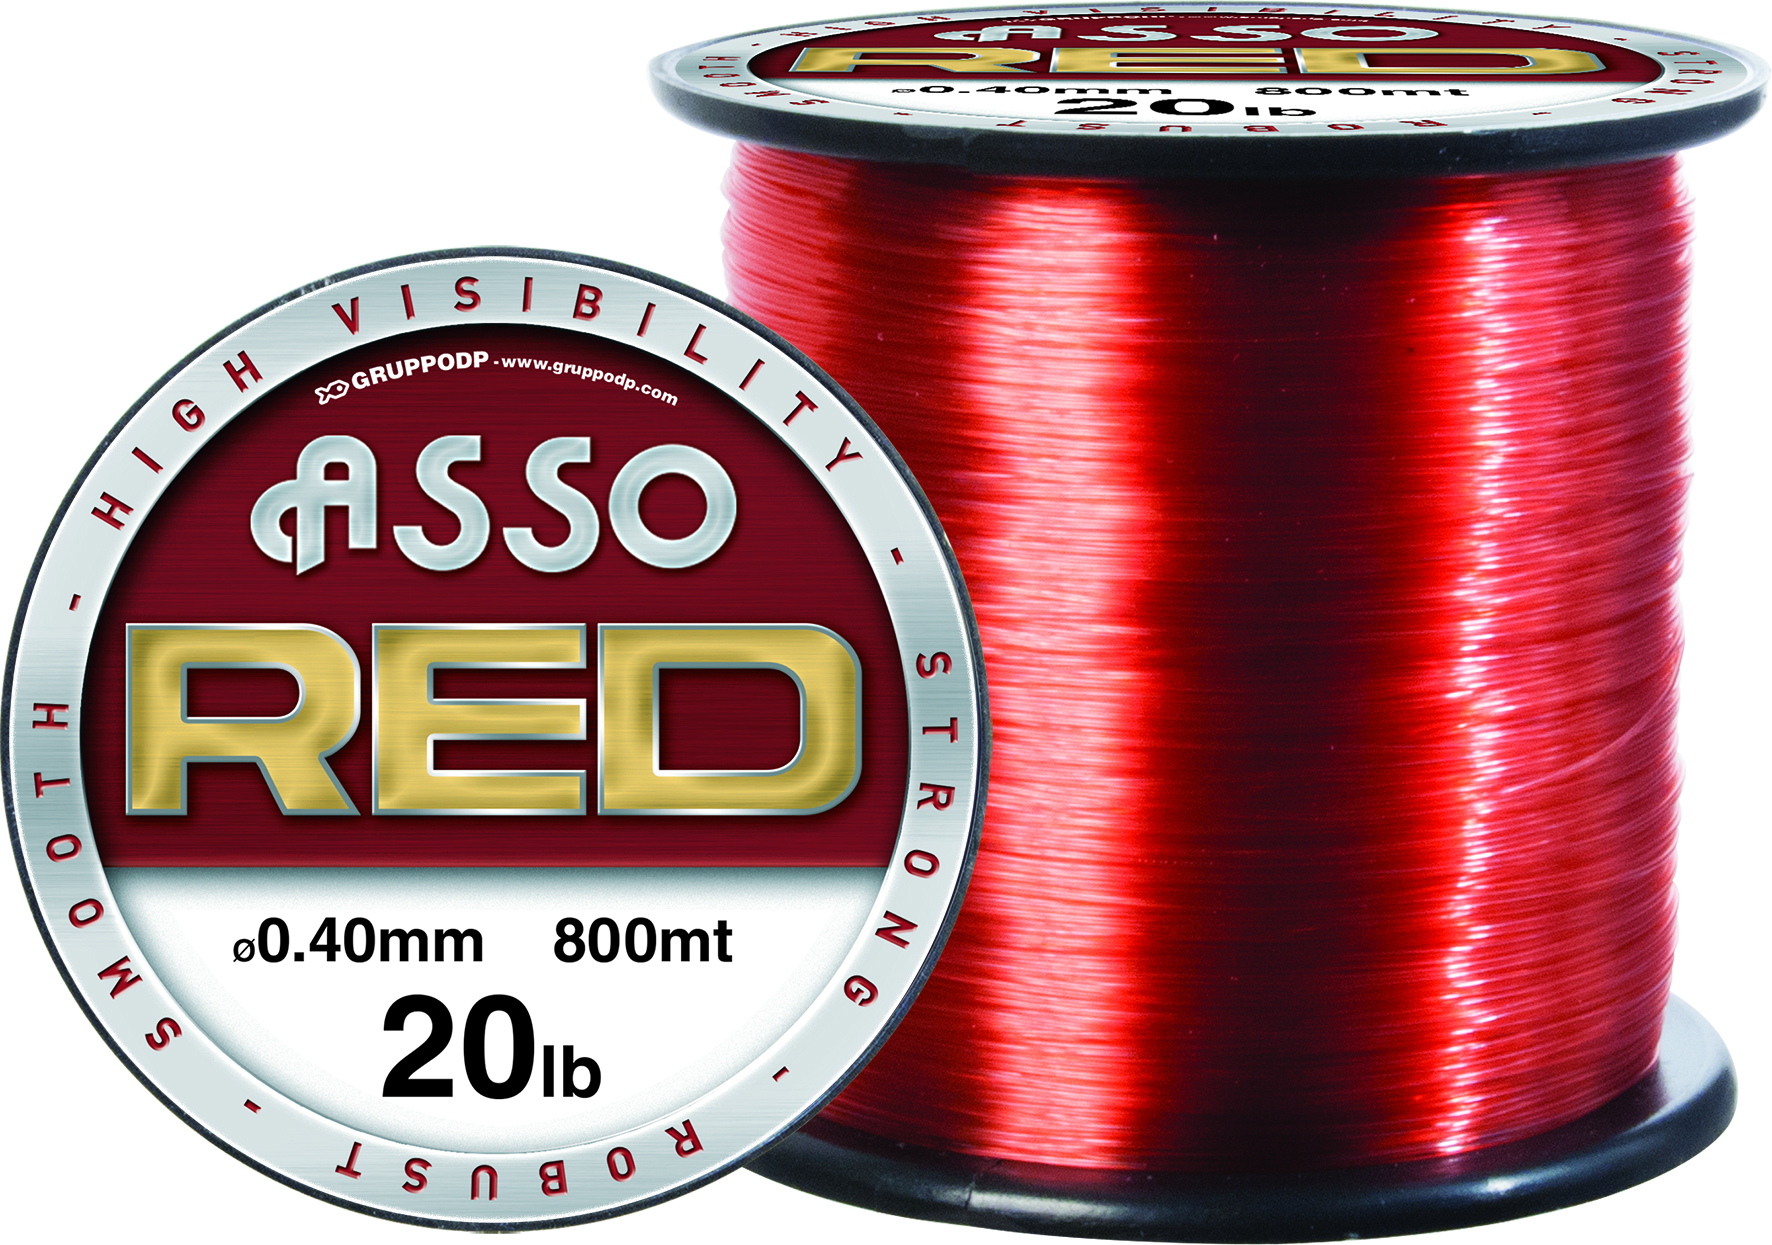 Asso product asso red fishing line for Red fishing line